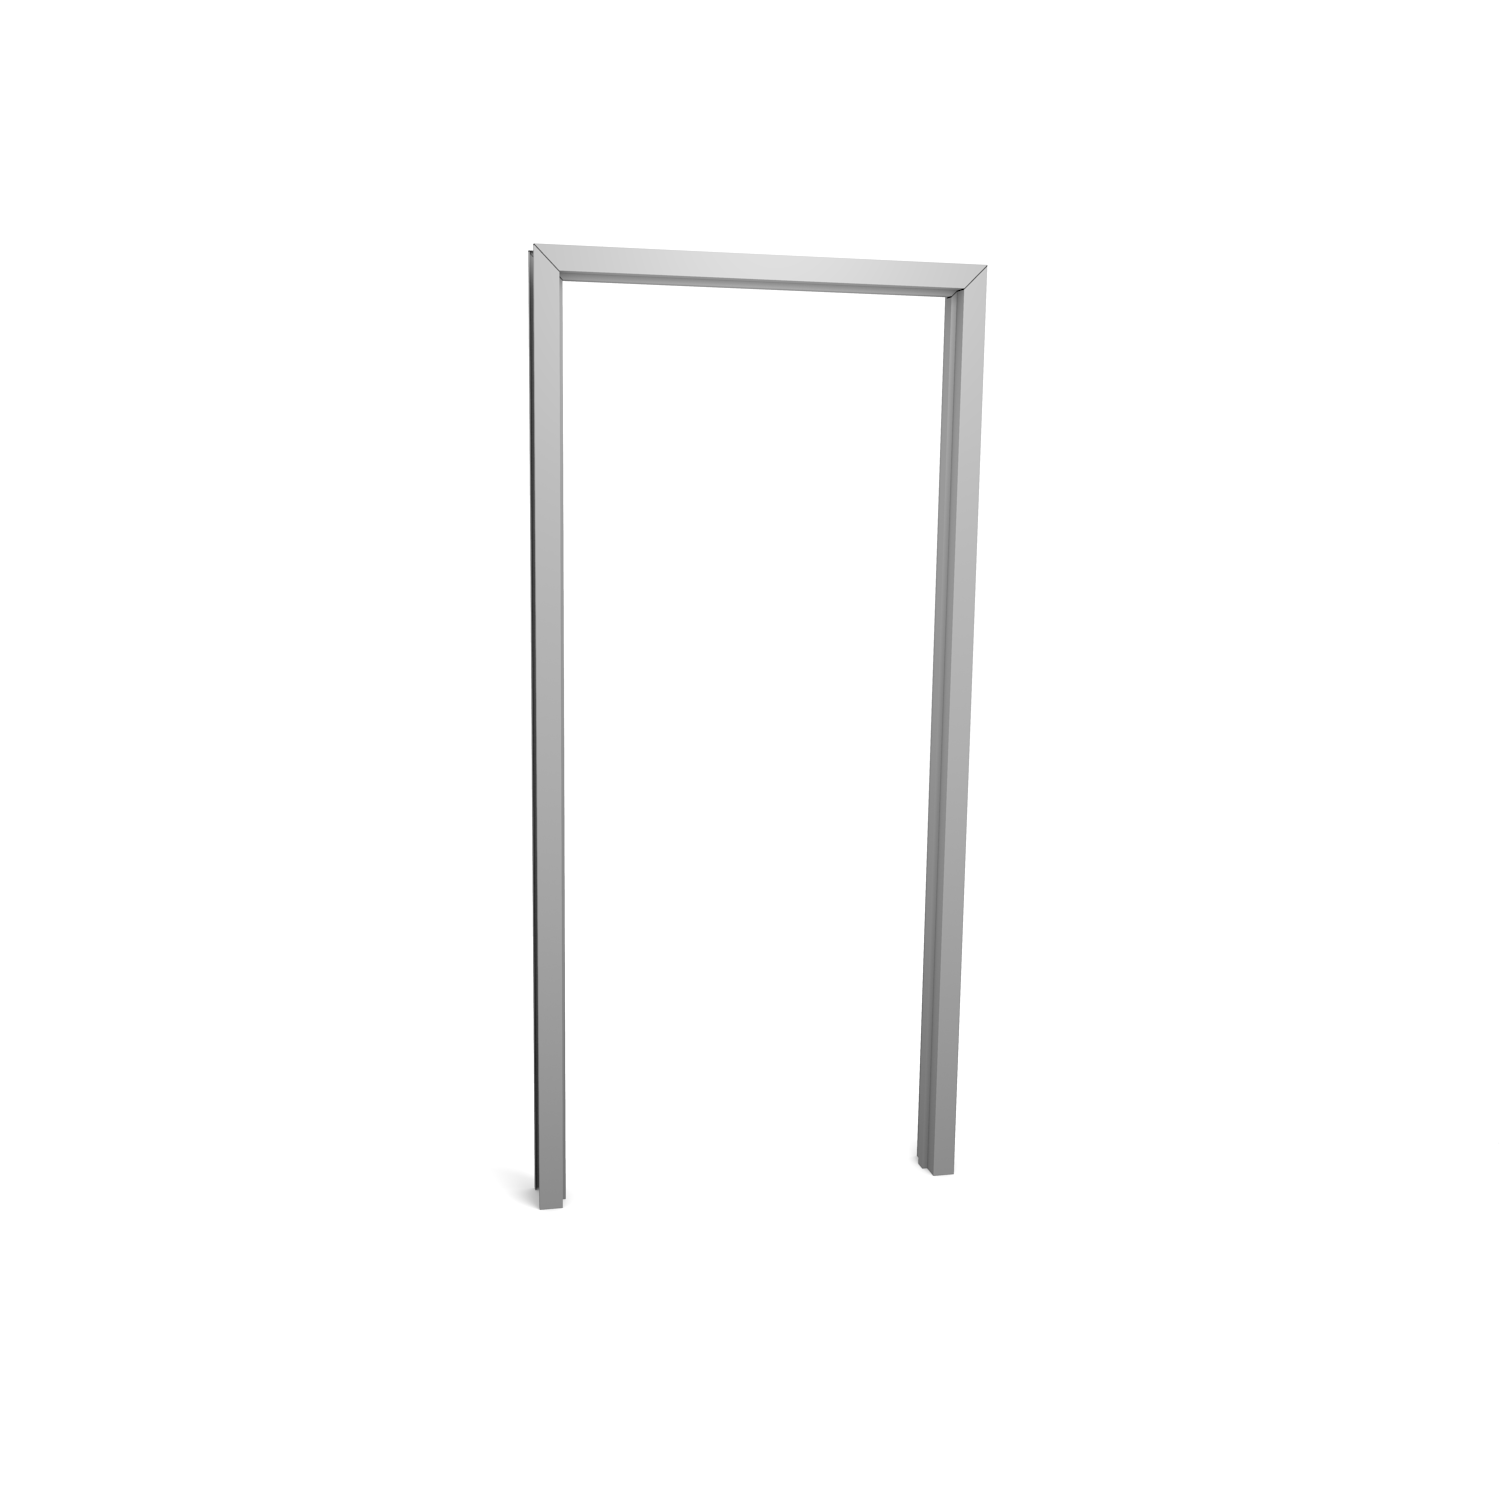 Commercial Hollow Metal Door Frames | Hollow metal doors, Commercial ...